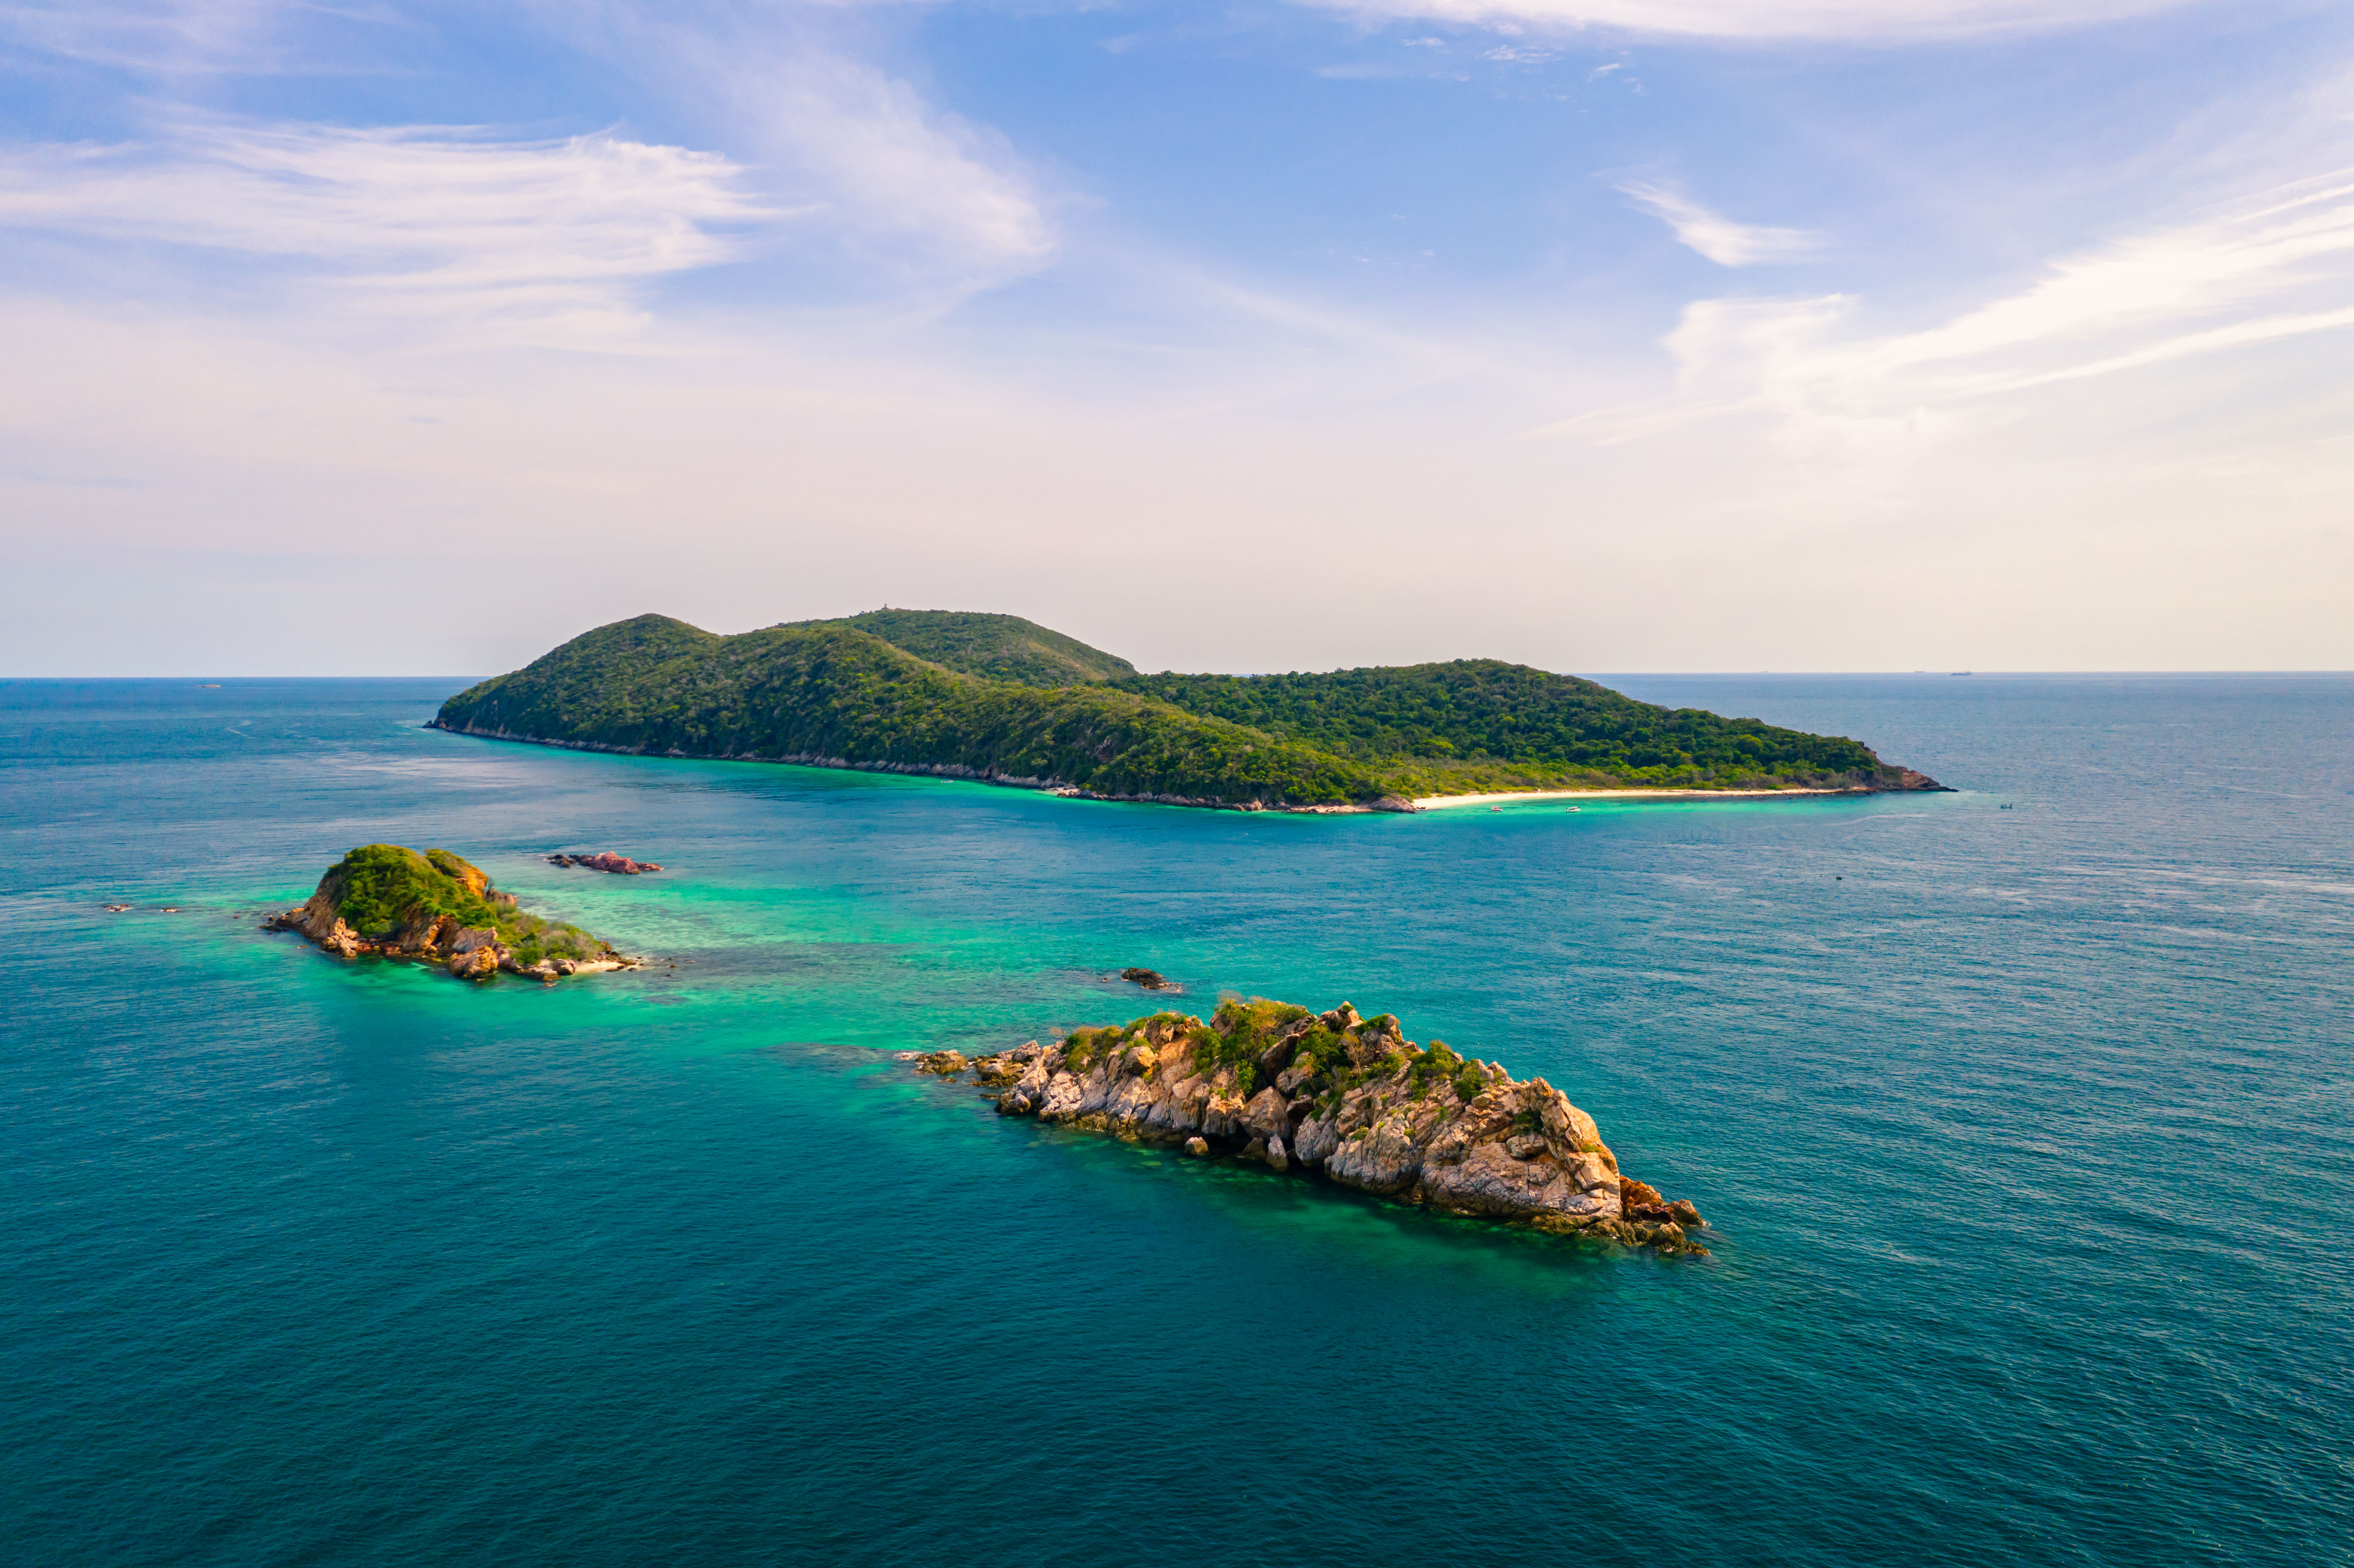 Aerial view of three small islands covered in green trees surrounded by blue waters in Chonburi, Thailand.